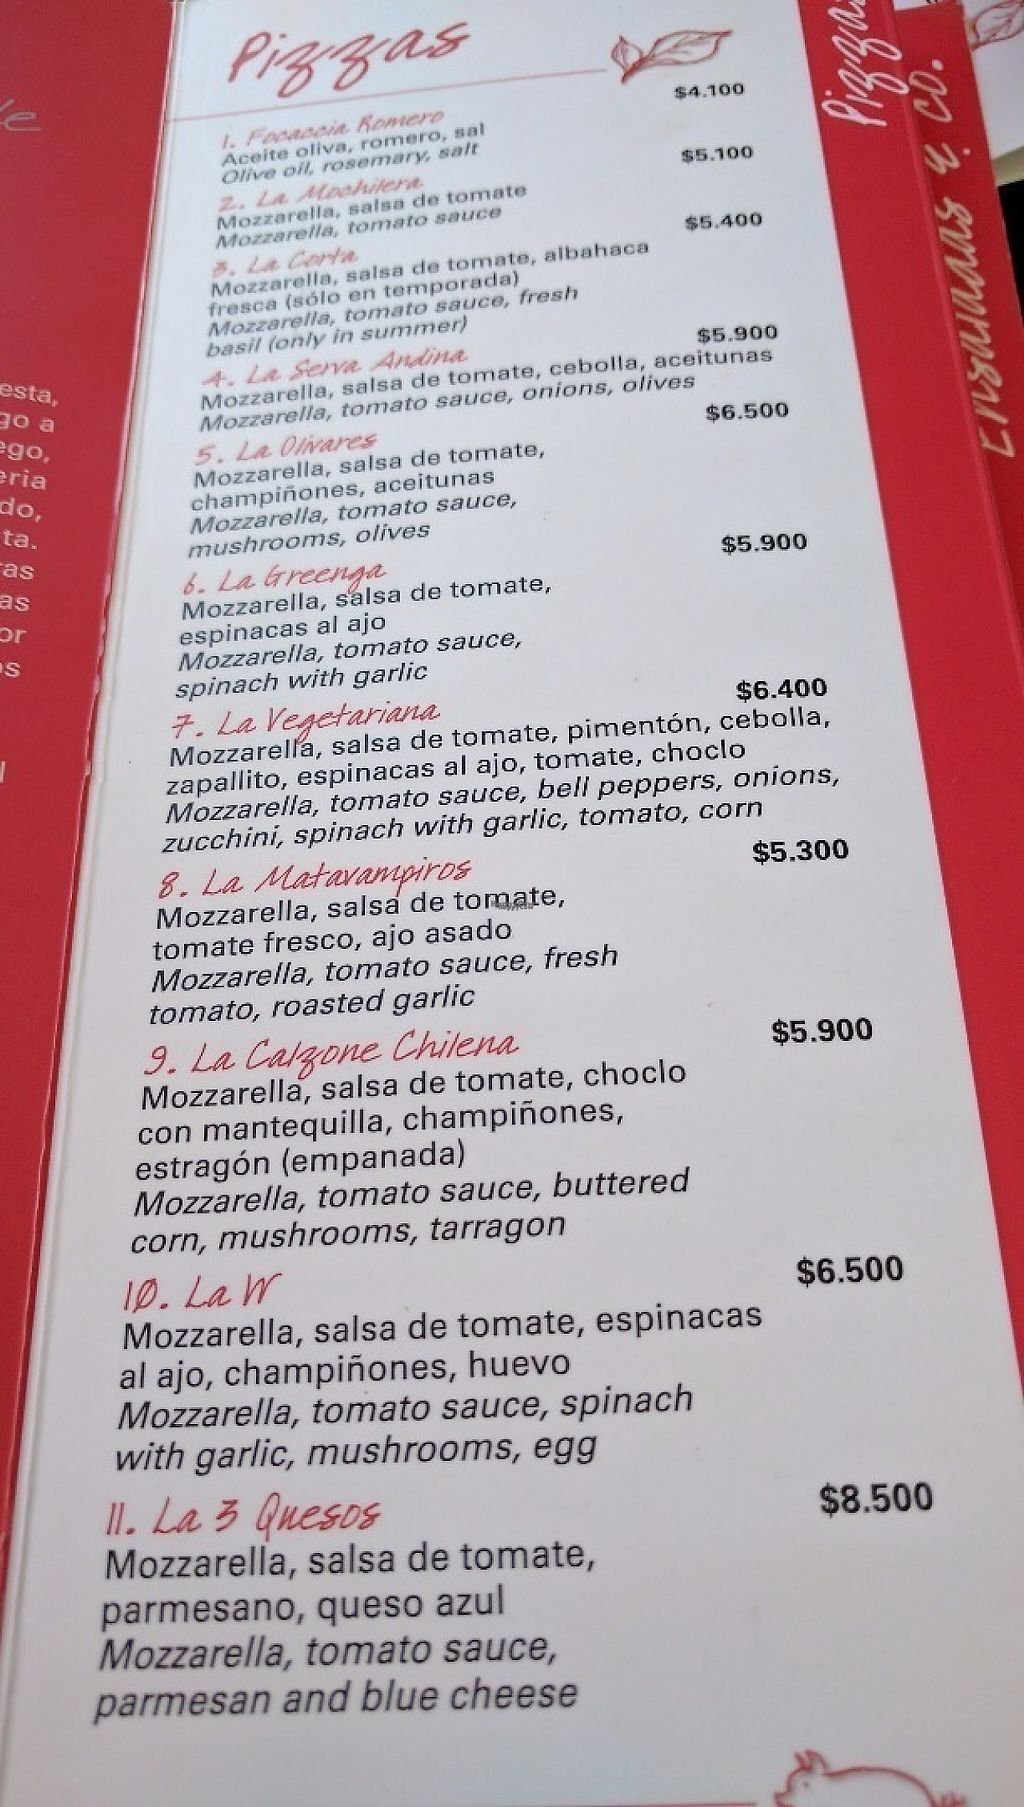 """Photo of Mesita Grande  by <a href=""""/members/profile/LoretoFlores"""">LoretoFlores</a> <br/>They have eleven Vegetarian pizza options <br/> December 1, 2016  - <a href='/contact/abuse/image/83305/196100'>Report</a>"""